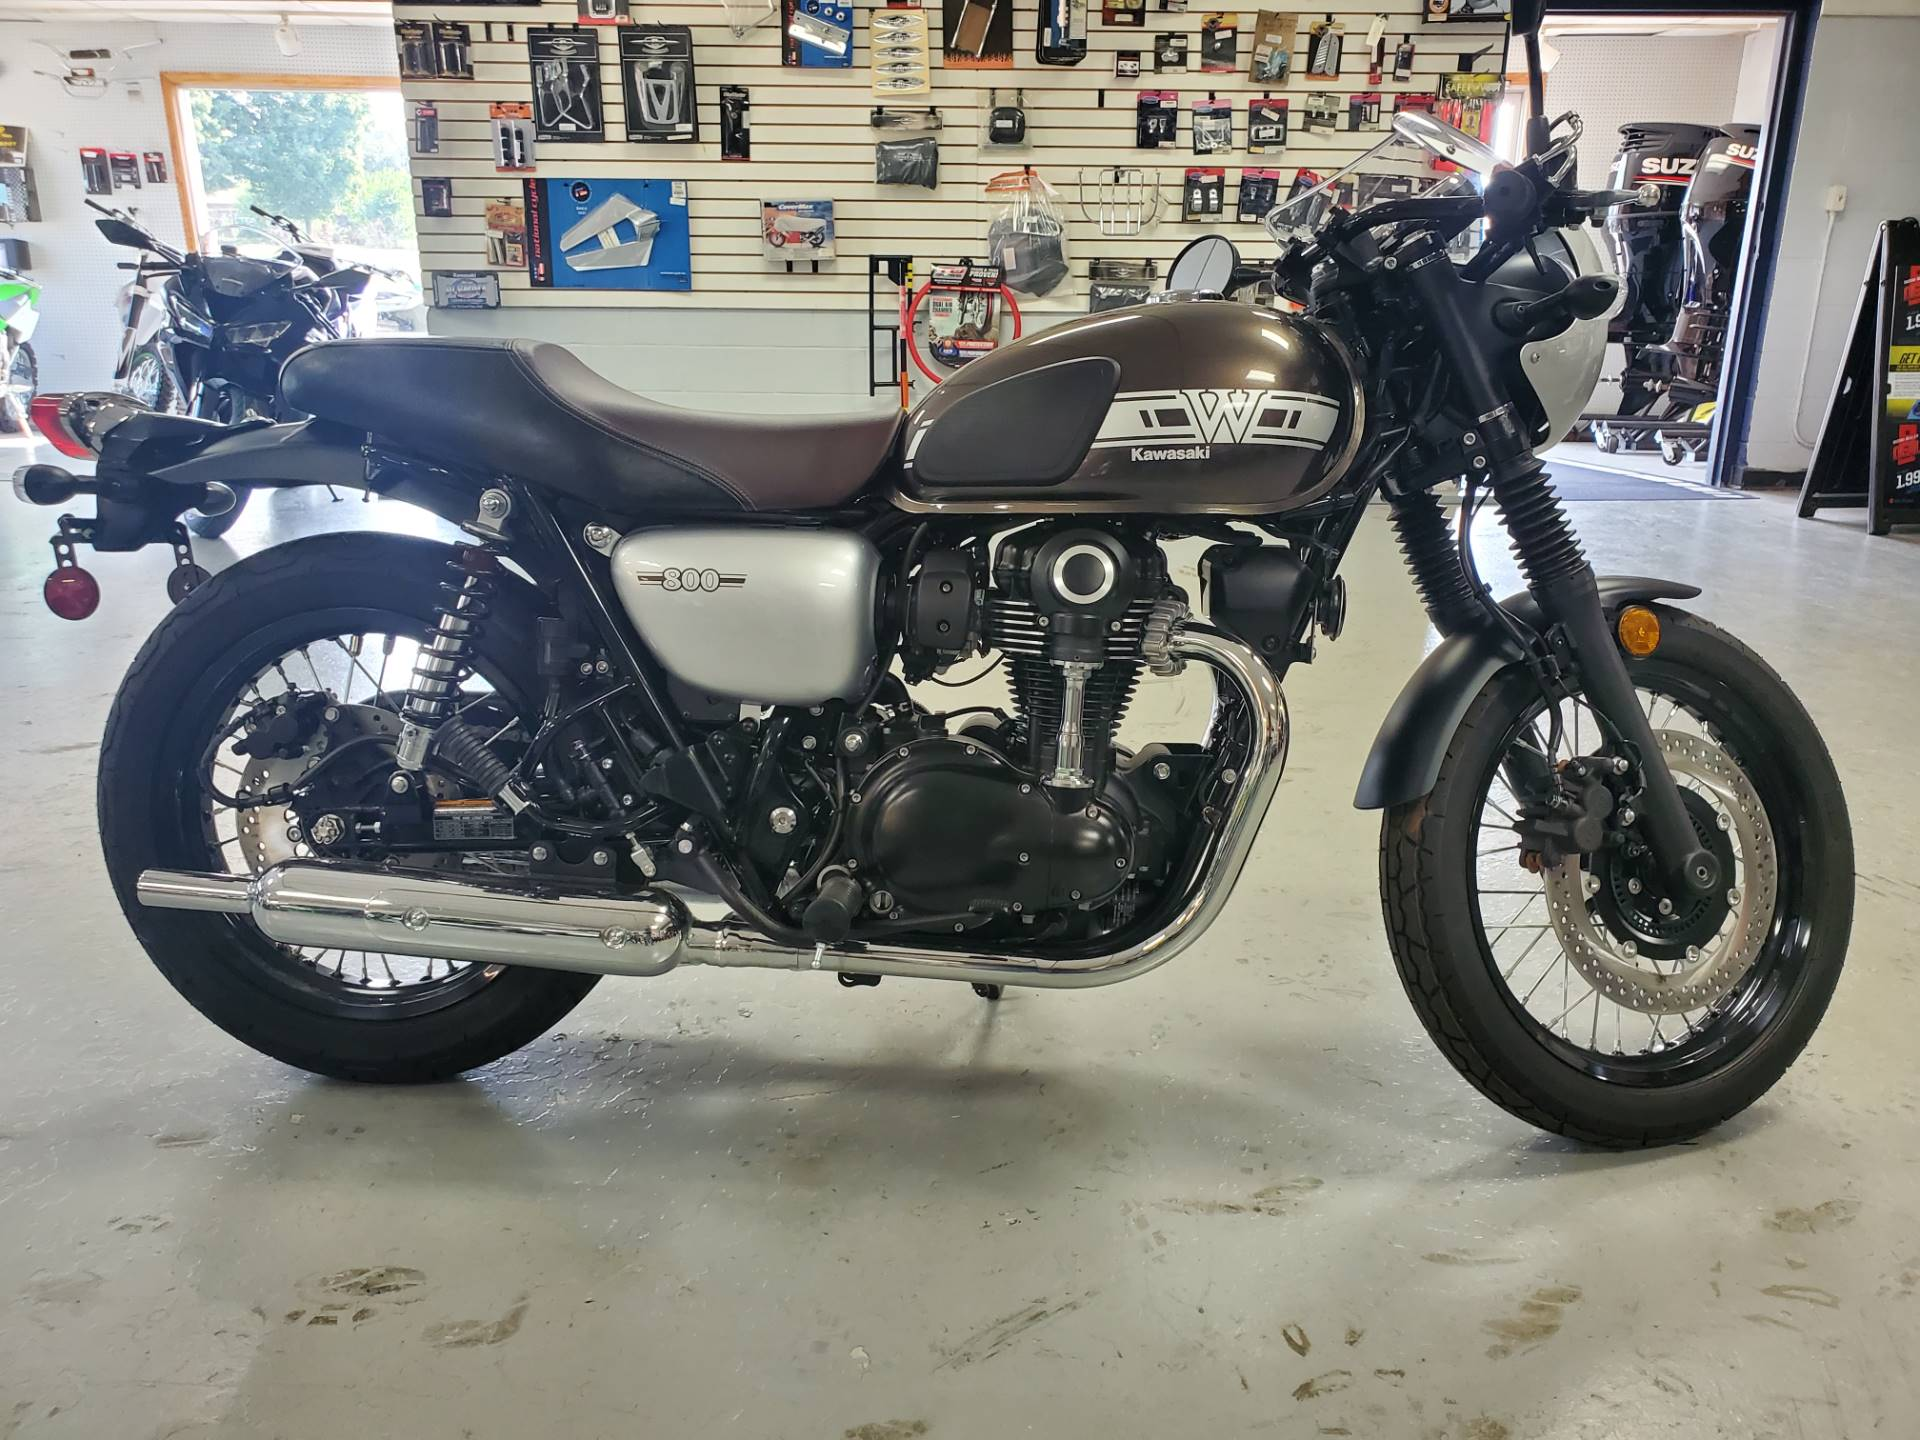 2019 Kawasaki W800 Cafe in Lebanon, Missouri - Photo 3